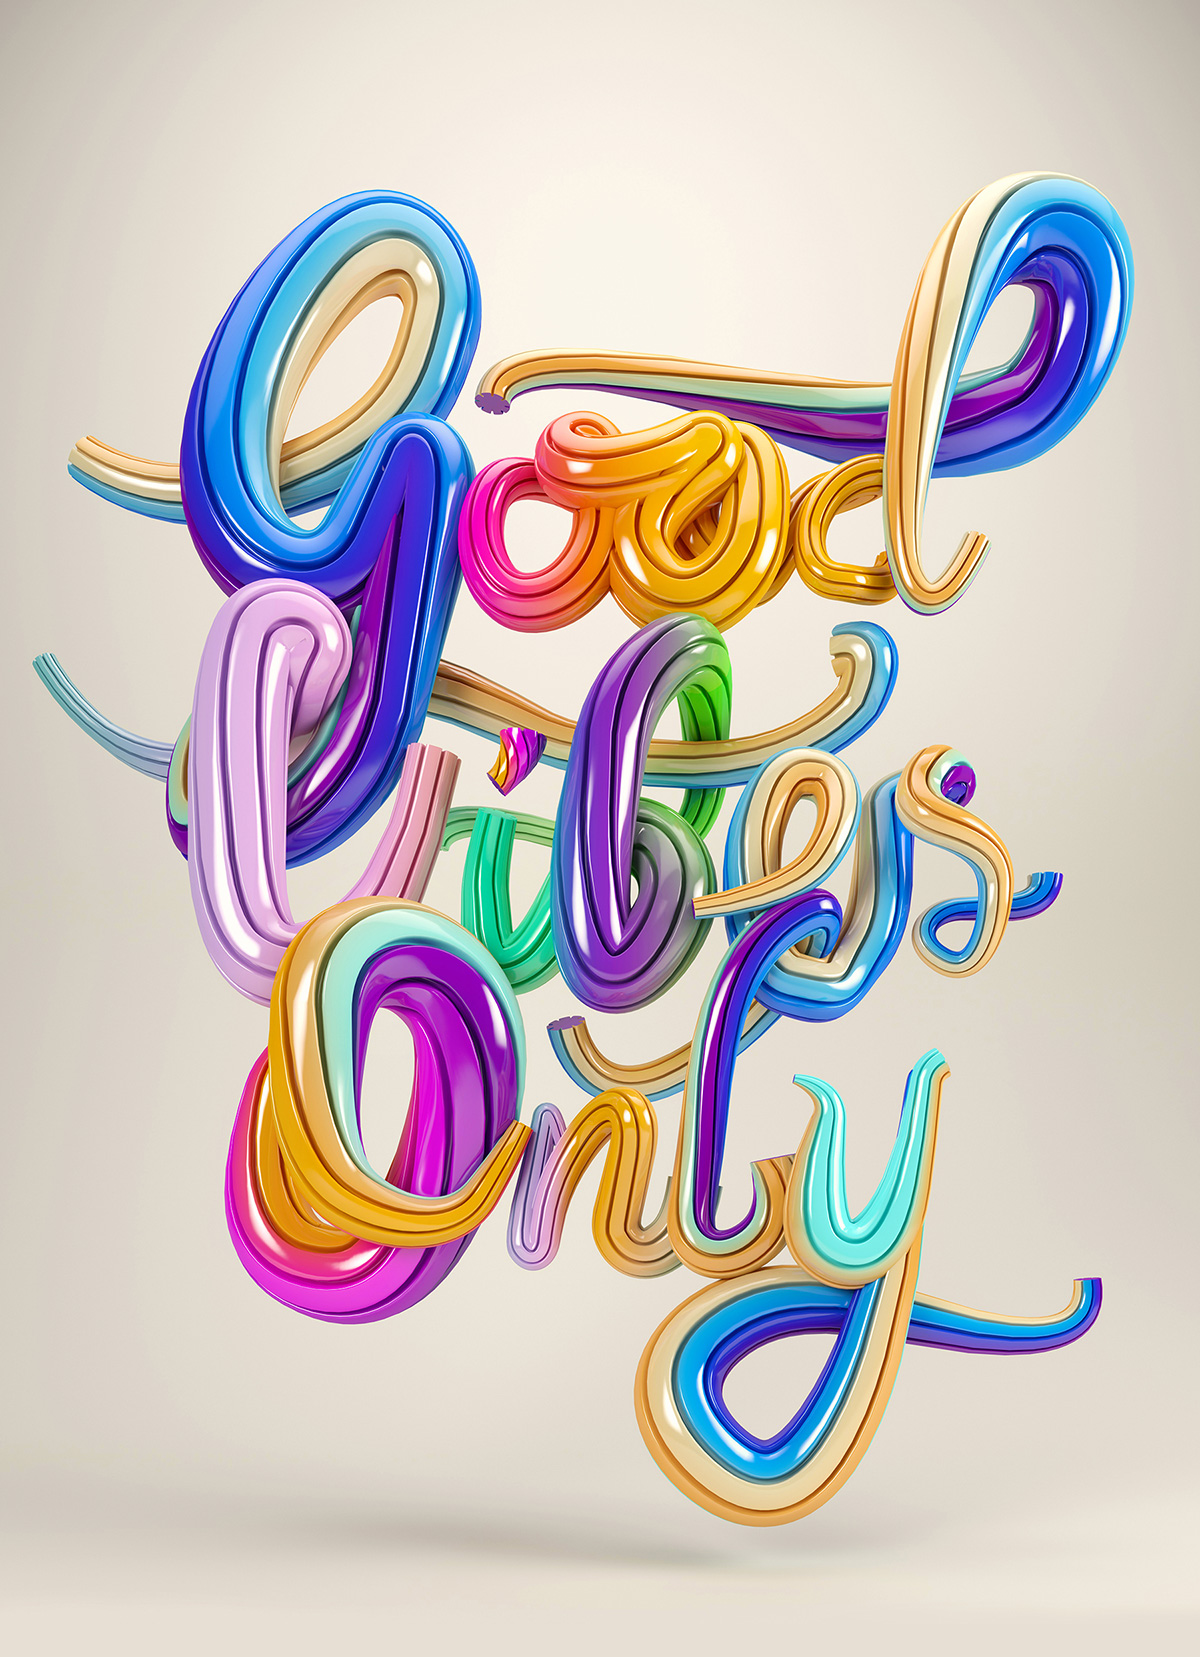 good vibes only ben fearnley cg artist designer